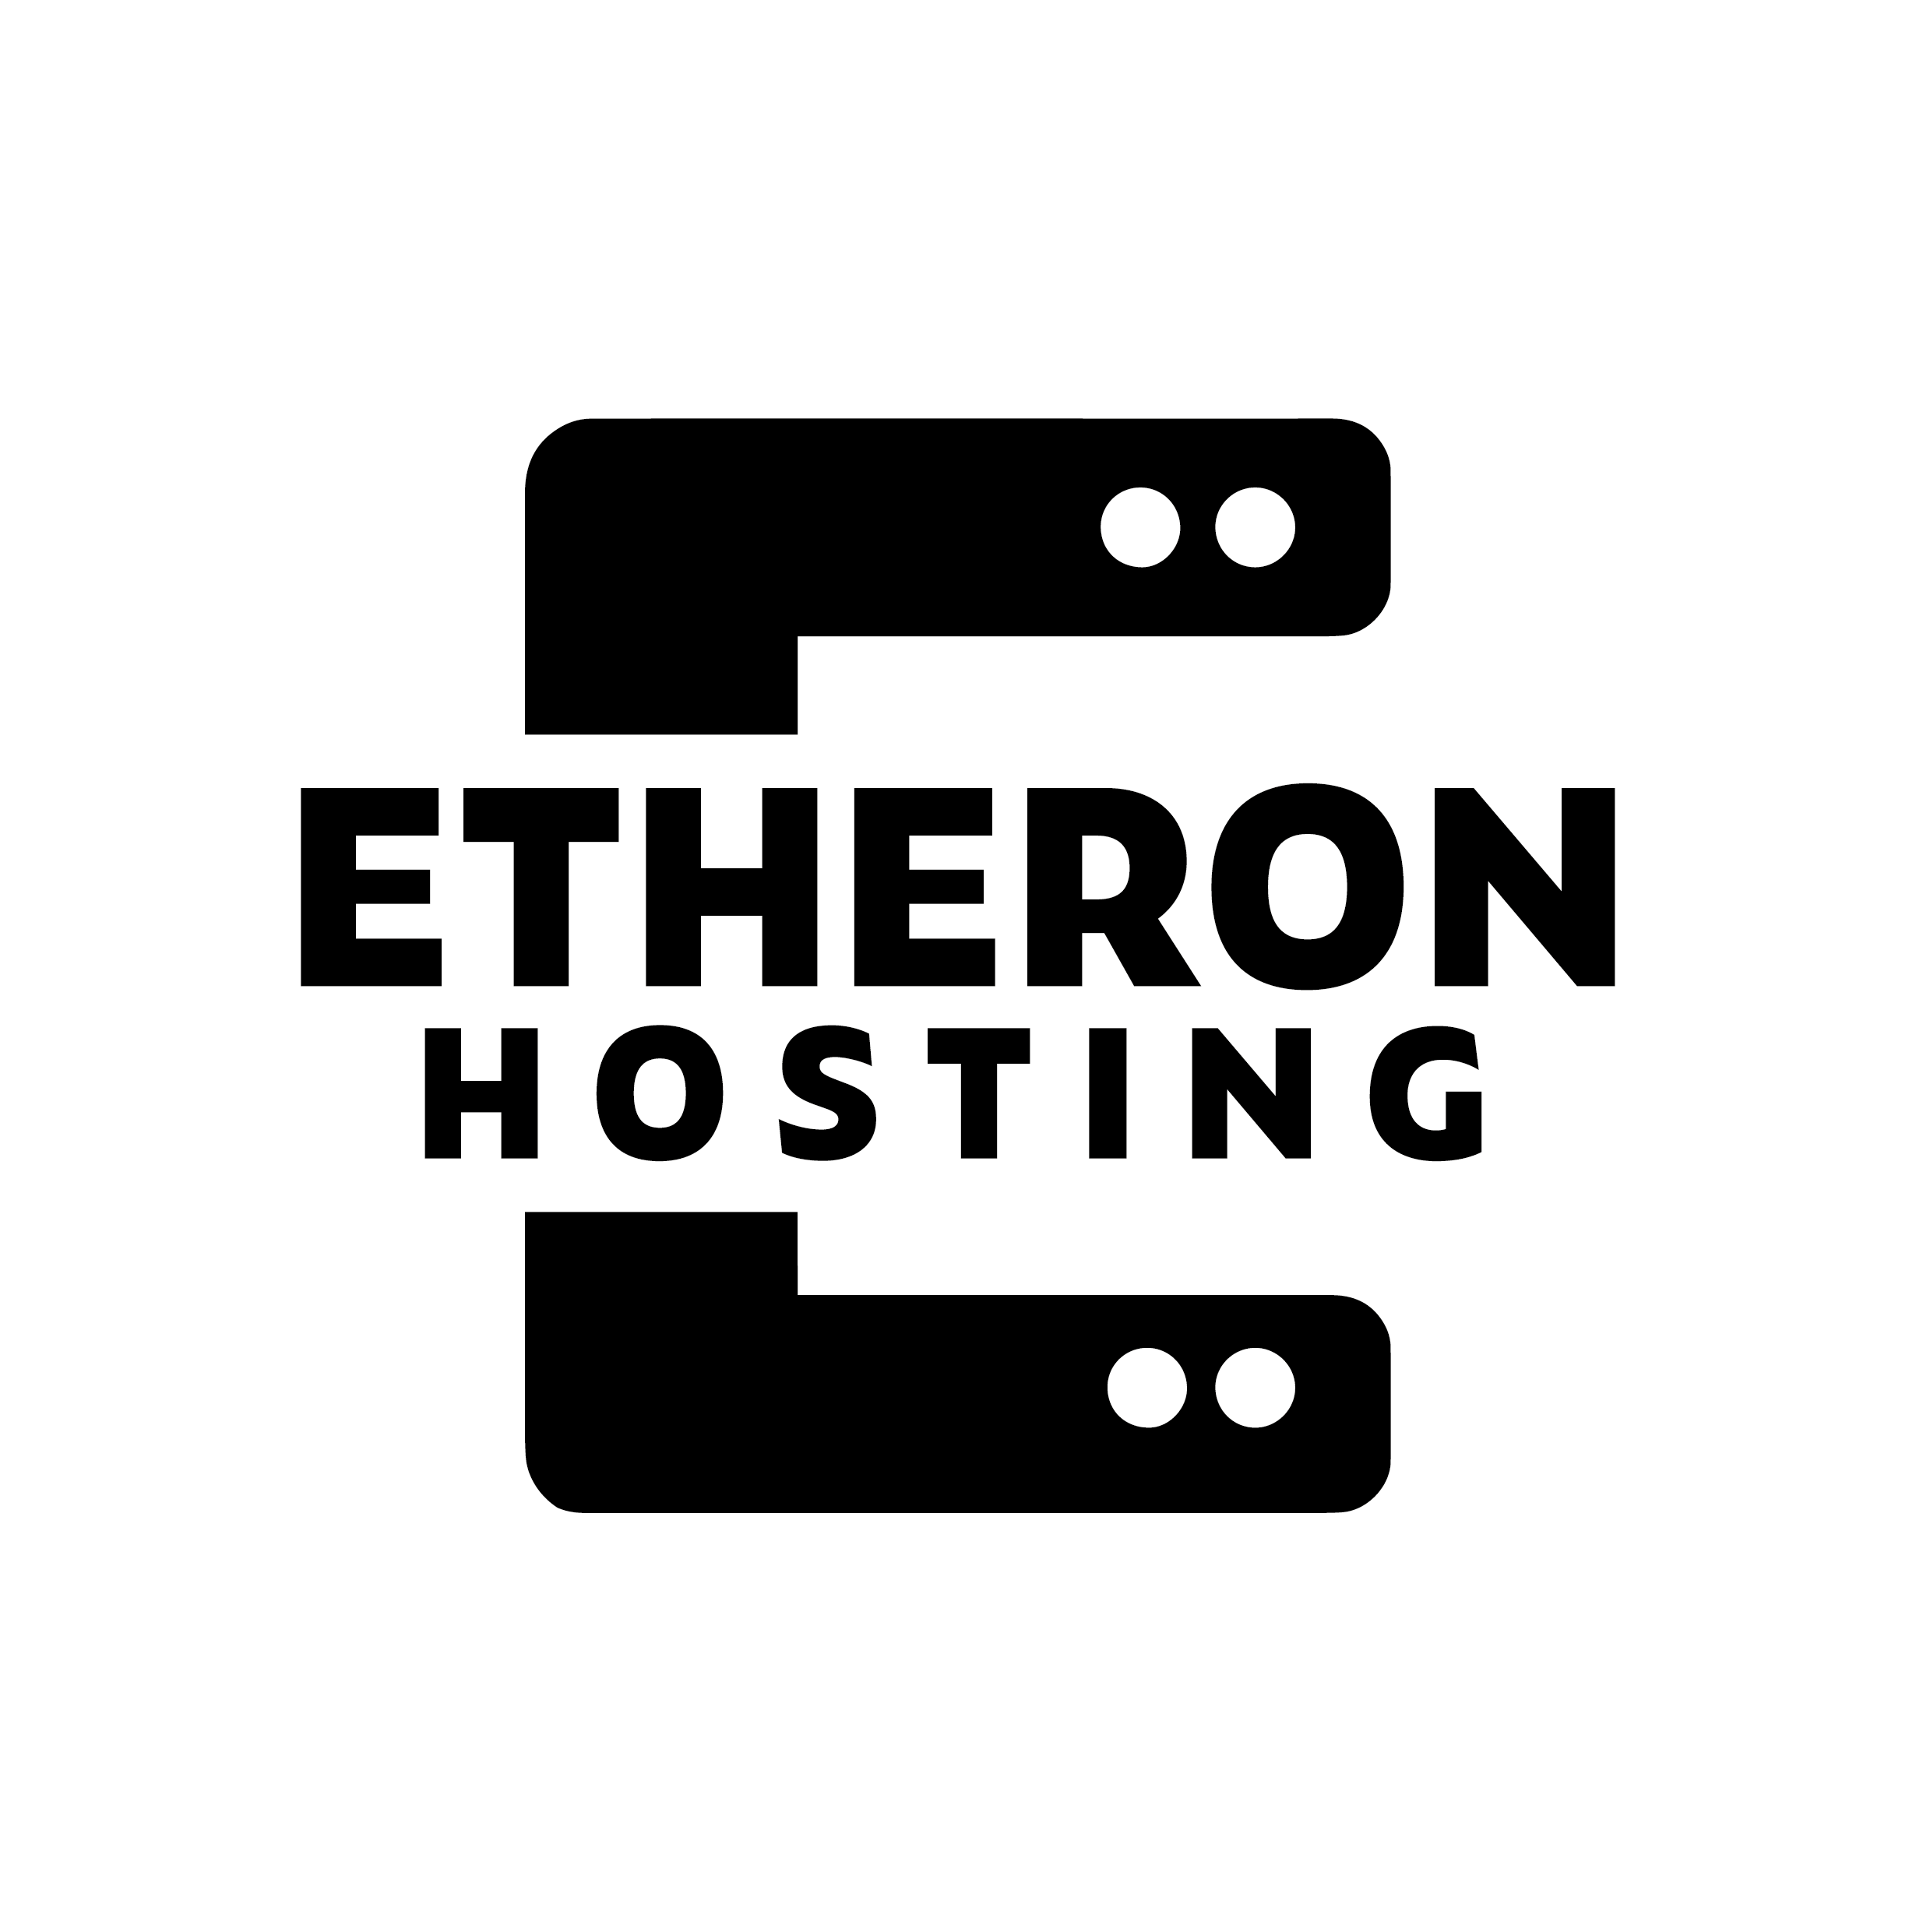 Etheron Hosting